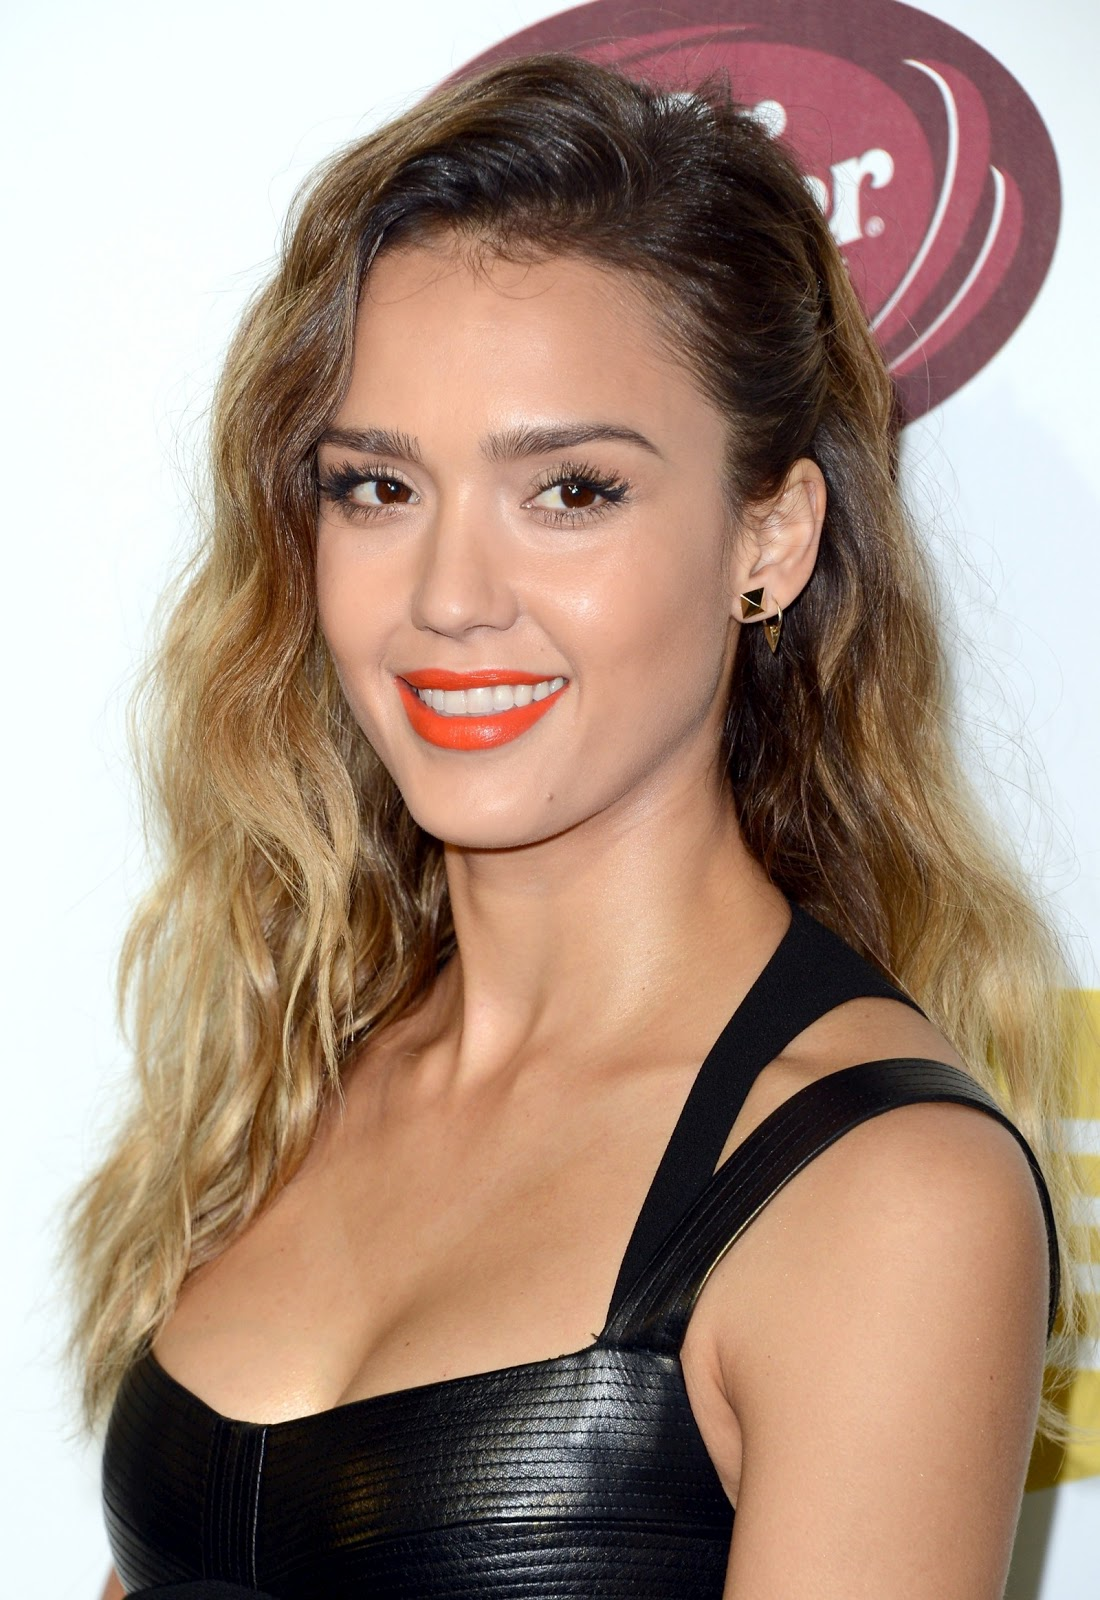 http://2.bp.blogspot.com/-x3B3SSqLaWQ/UMRLjcp9uTI/AAAAAAABNrU/r2gsKNRseKc/s1600/Jessica-Alba-Spike-TV-10th-Annual-Video-Game-Awards+%285%29.jpg